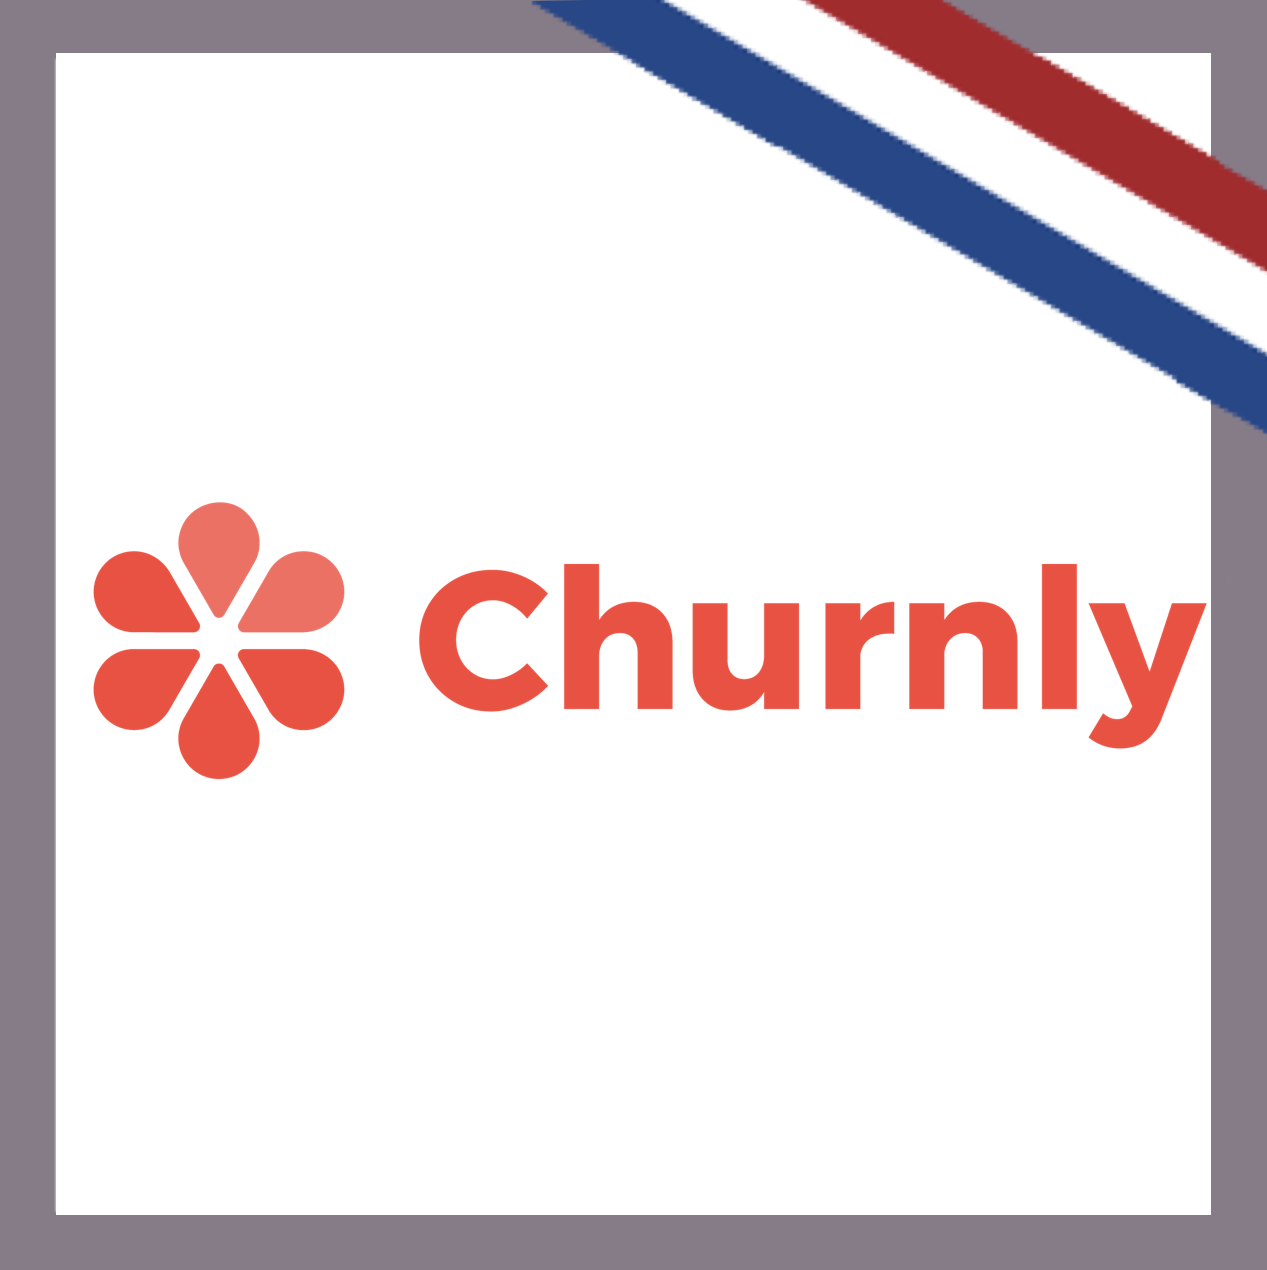 Churnly's churn prediction software uses Machine Learning to deeply understand why a company loses customers and predicts which customers they'll lose.